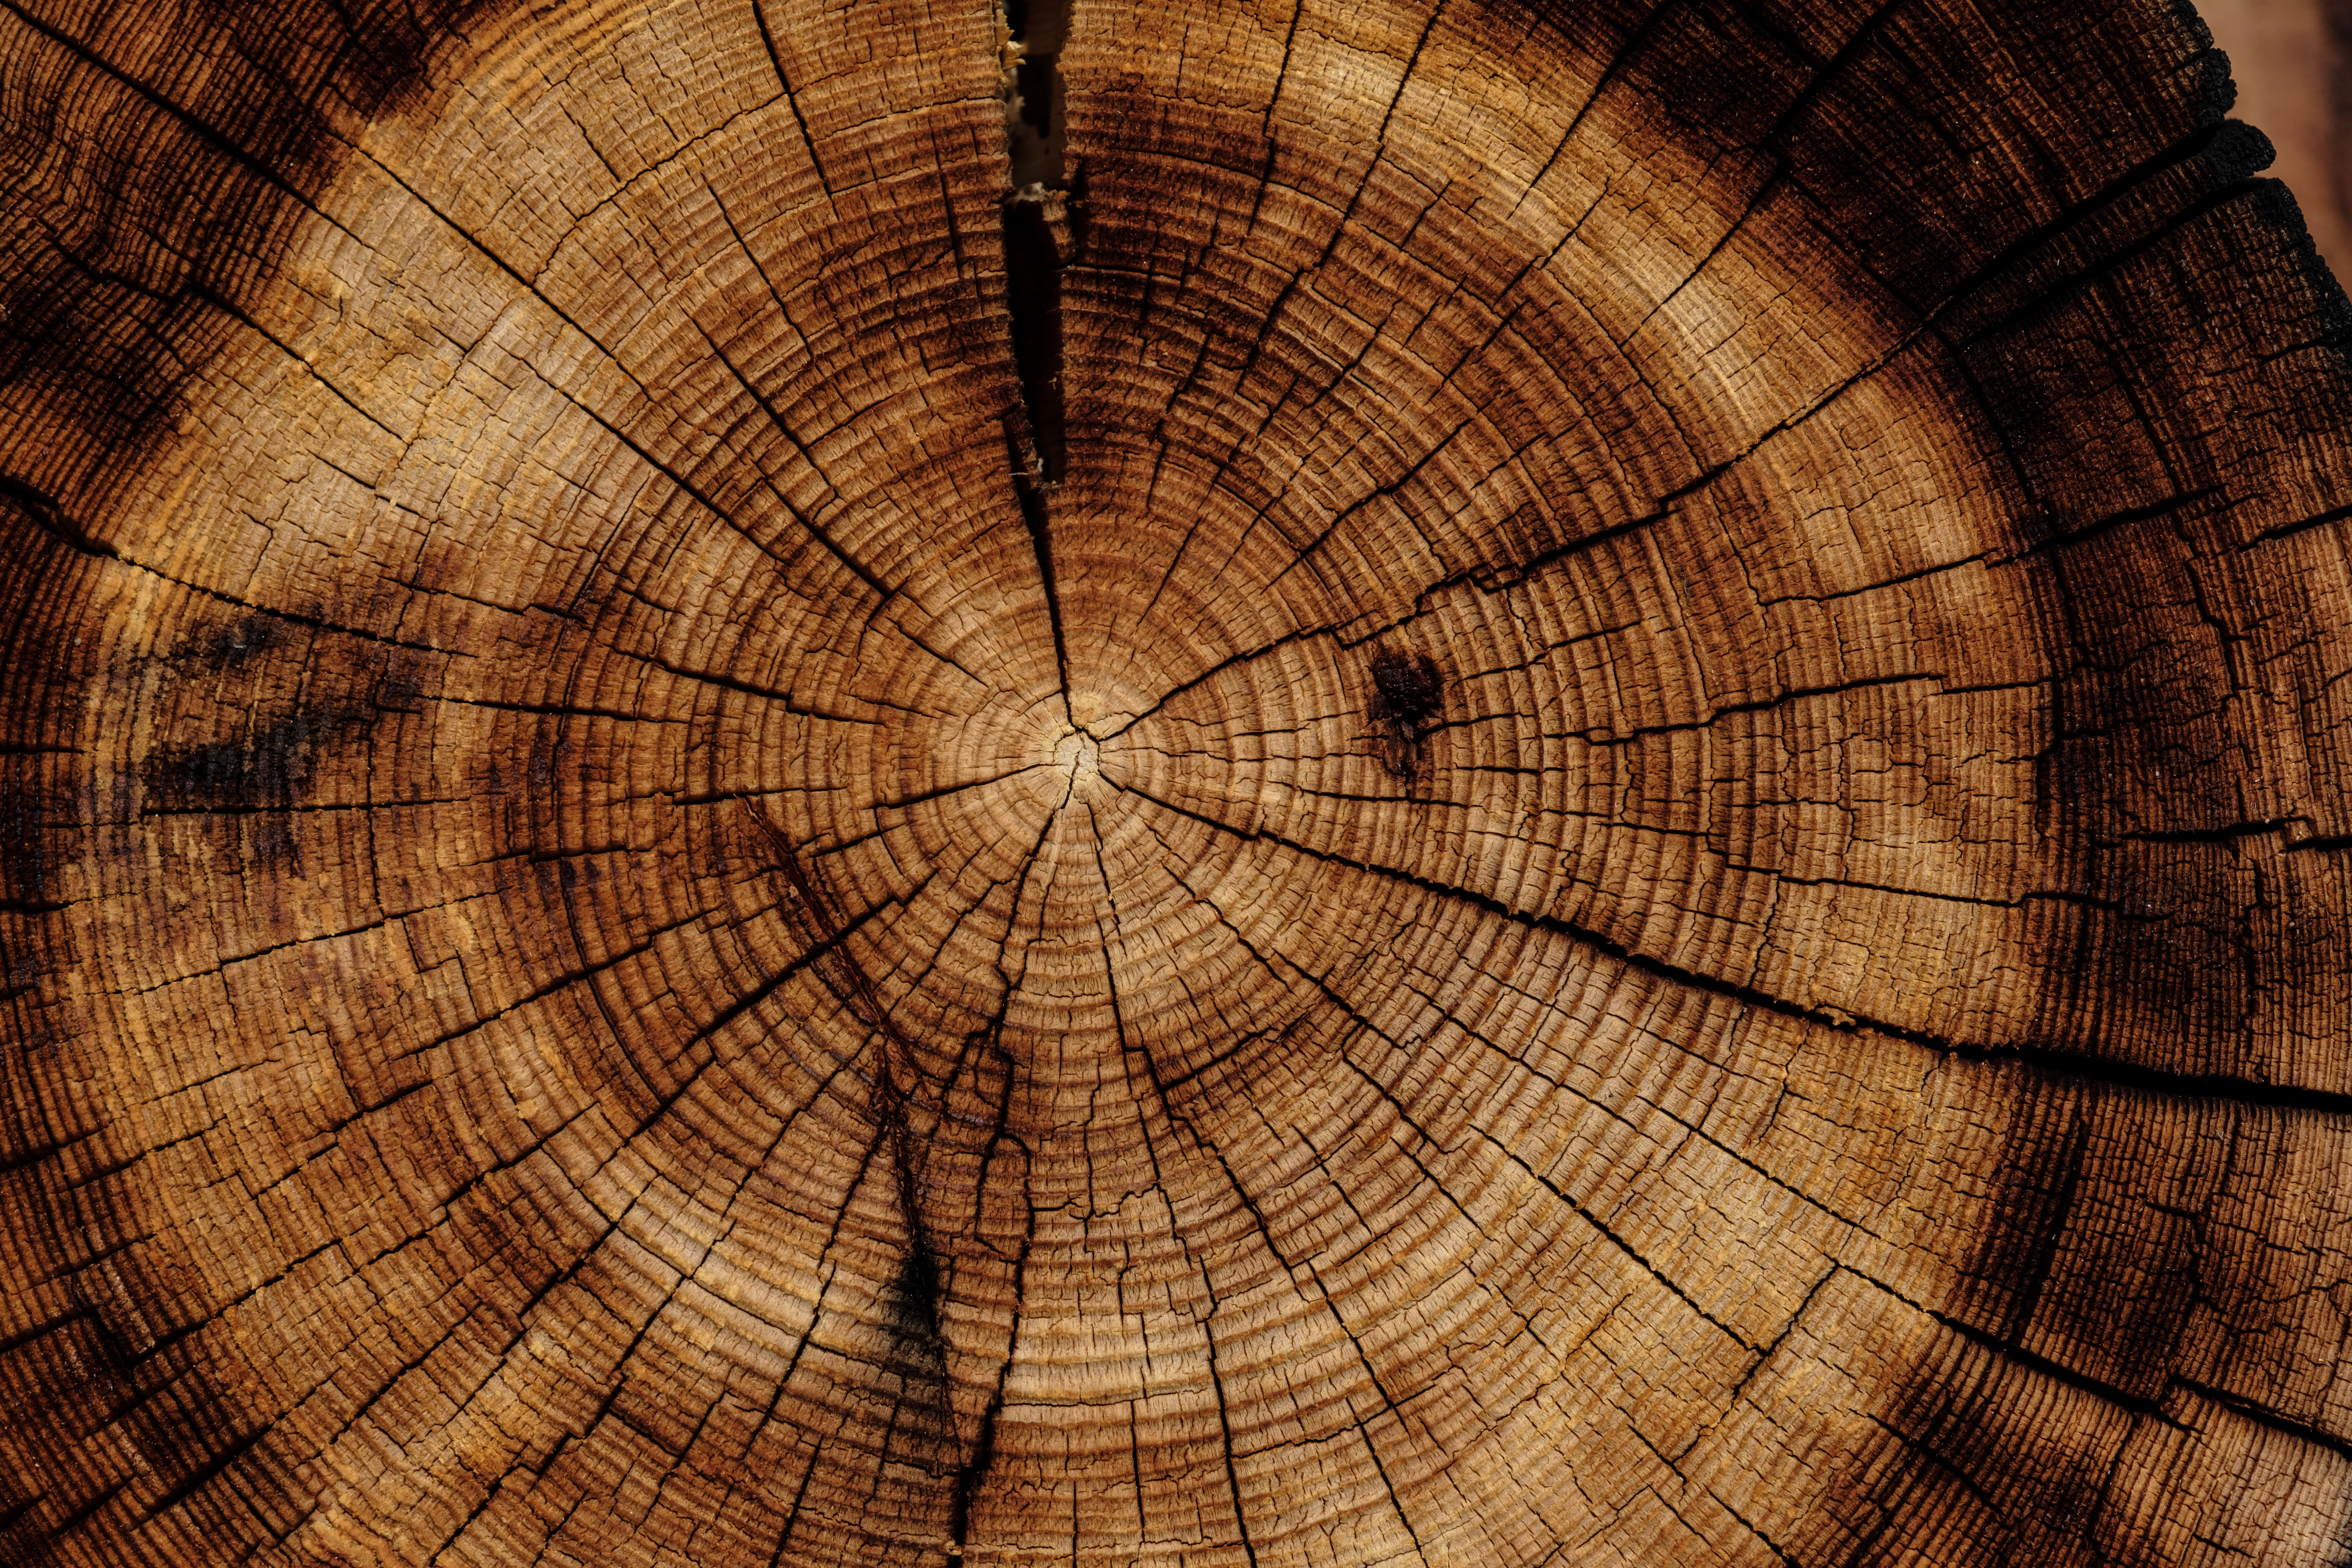 153962 download wallpaper Textures, Wood, Tree, Texture, Trunk screensavers and pictures for free